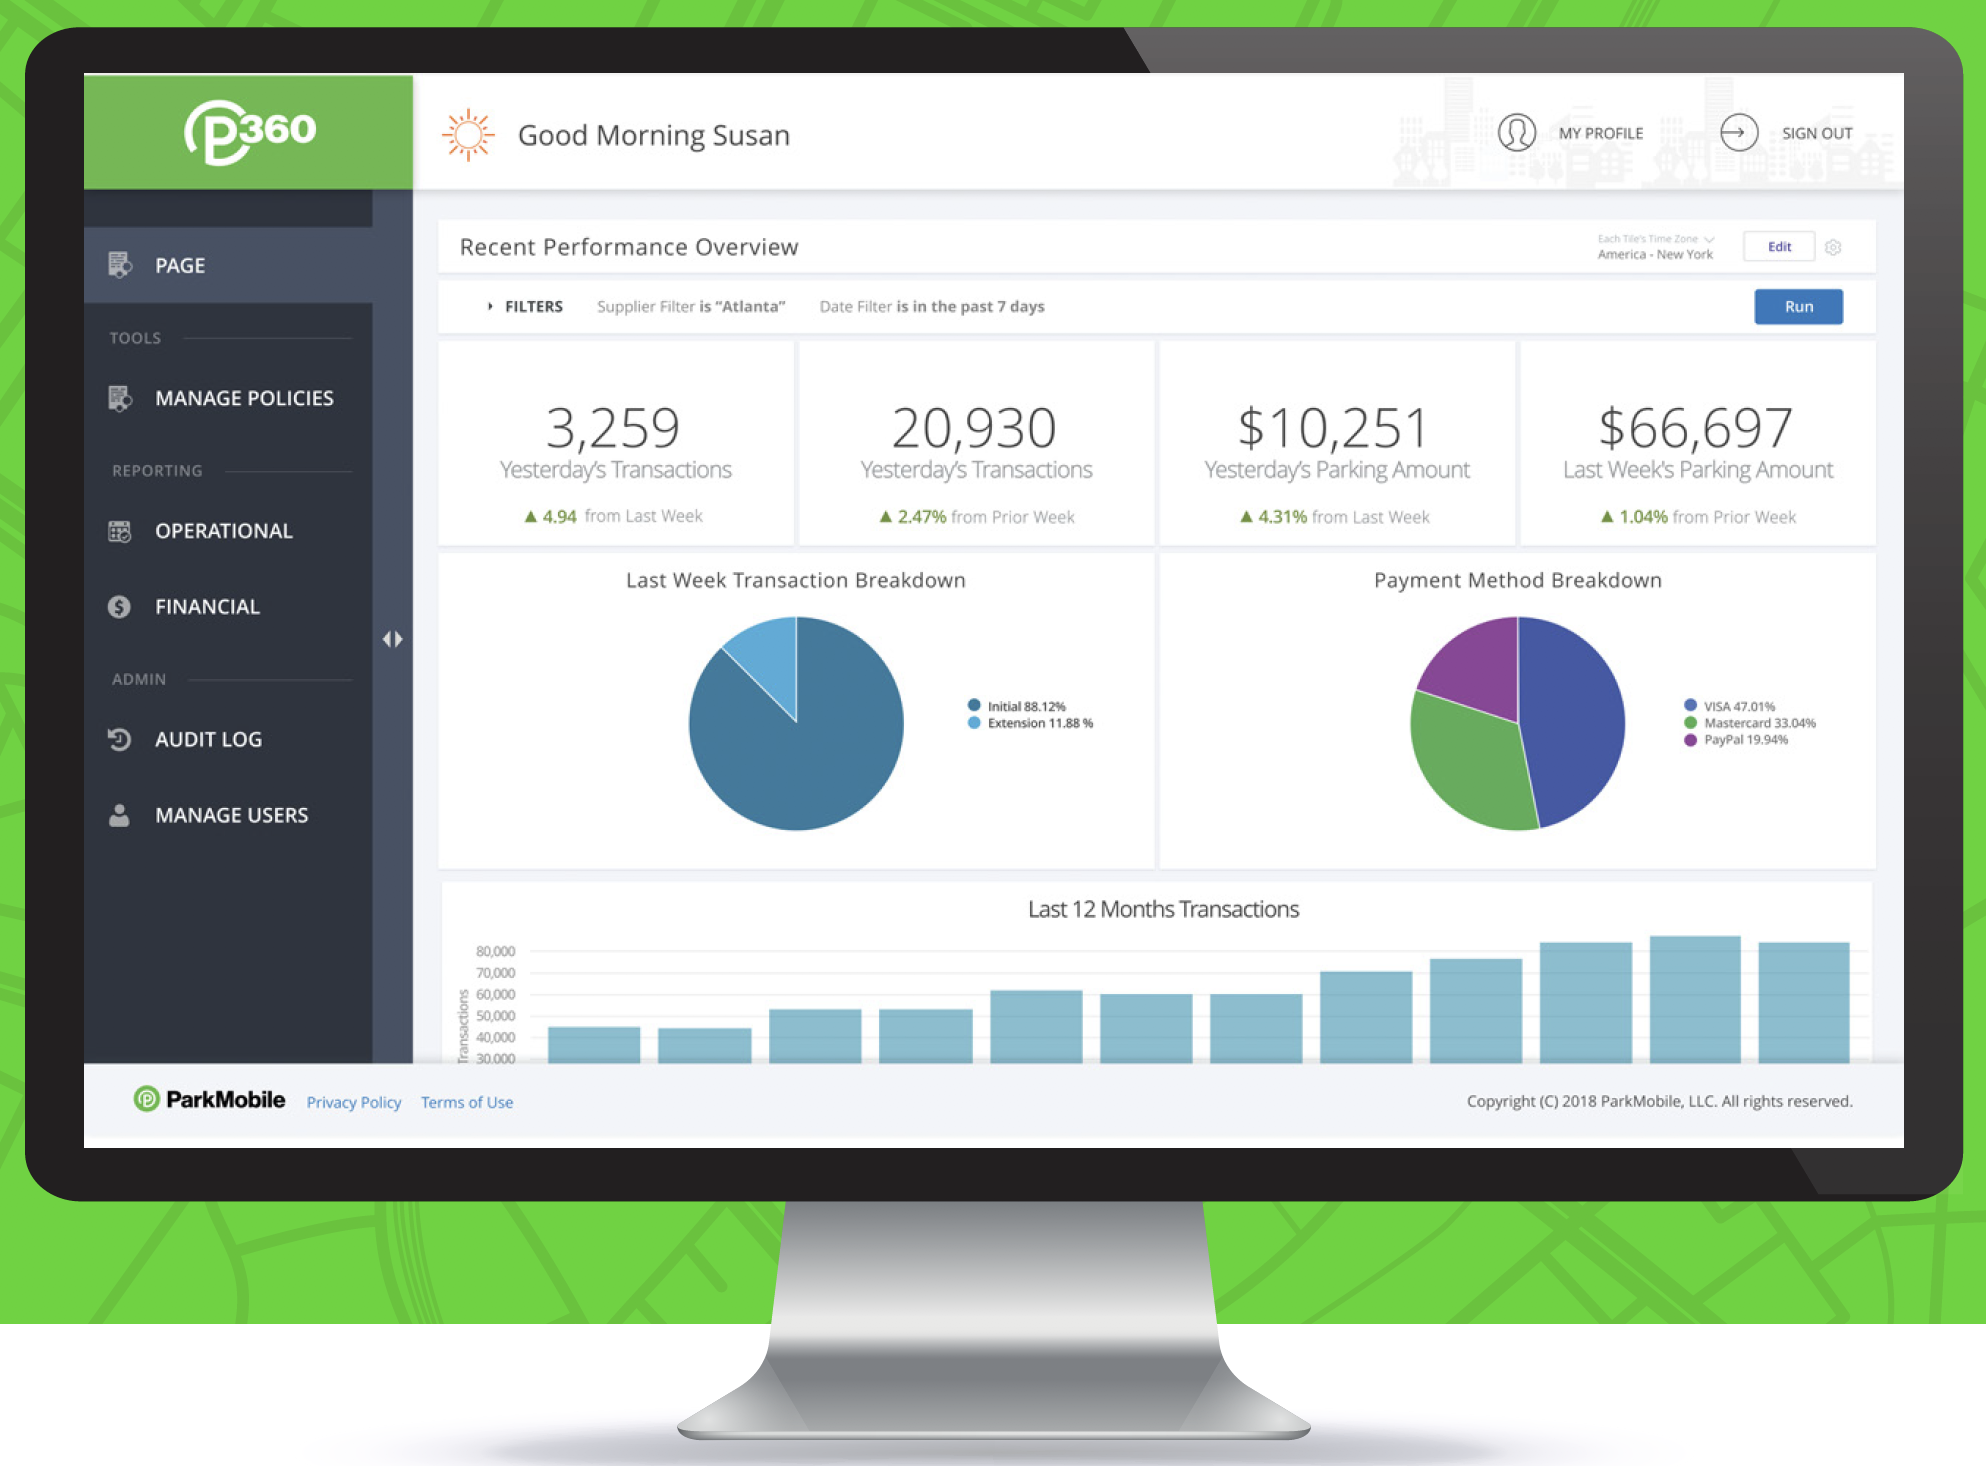 Insights and Analytics ParkMobile 360